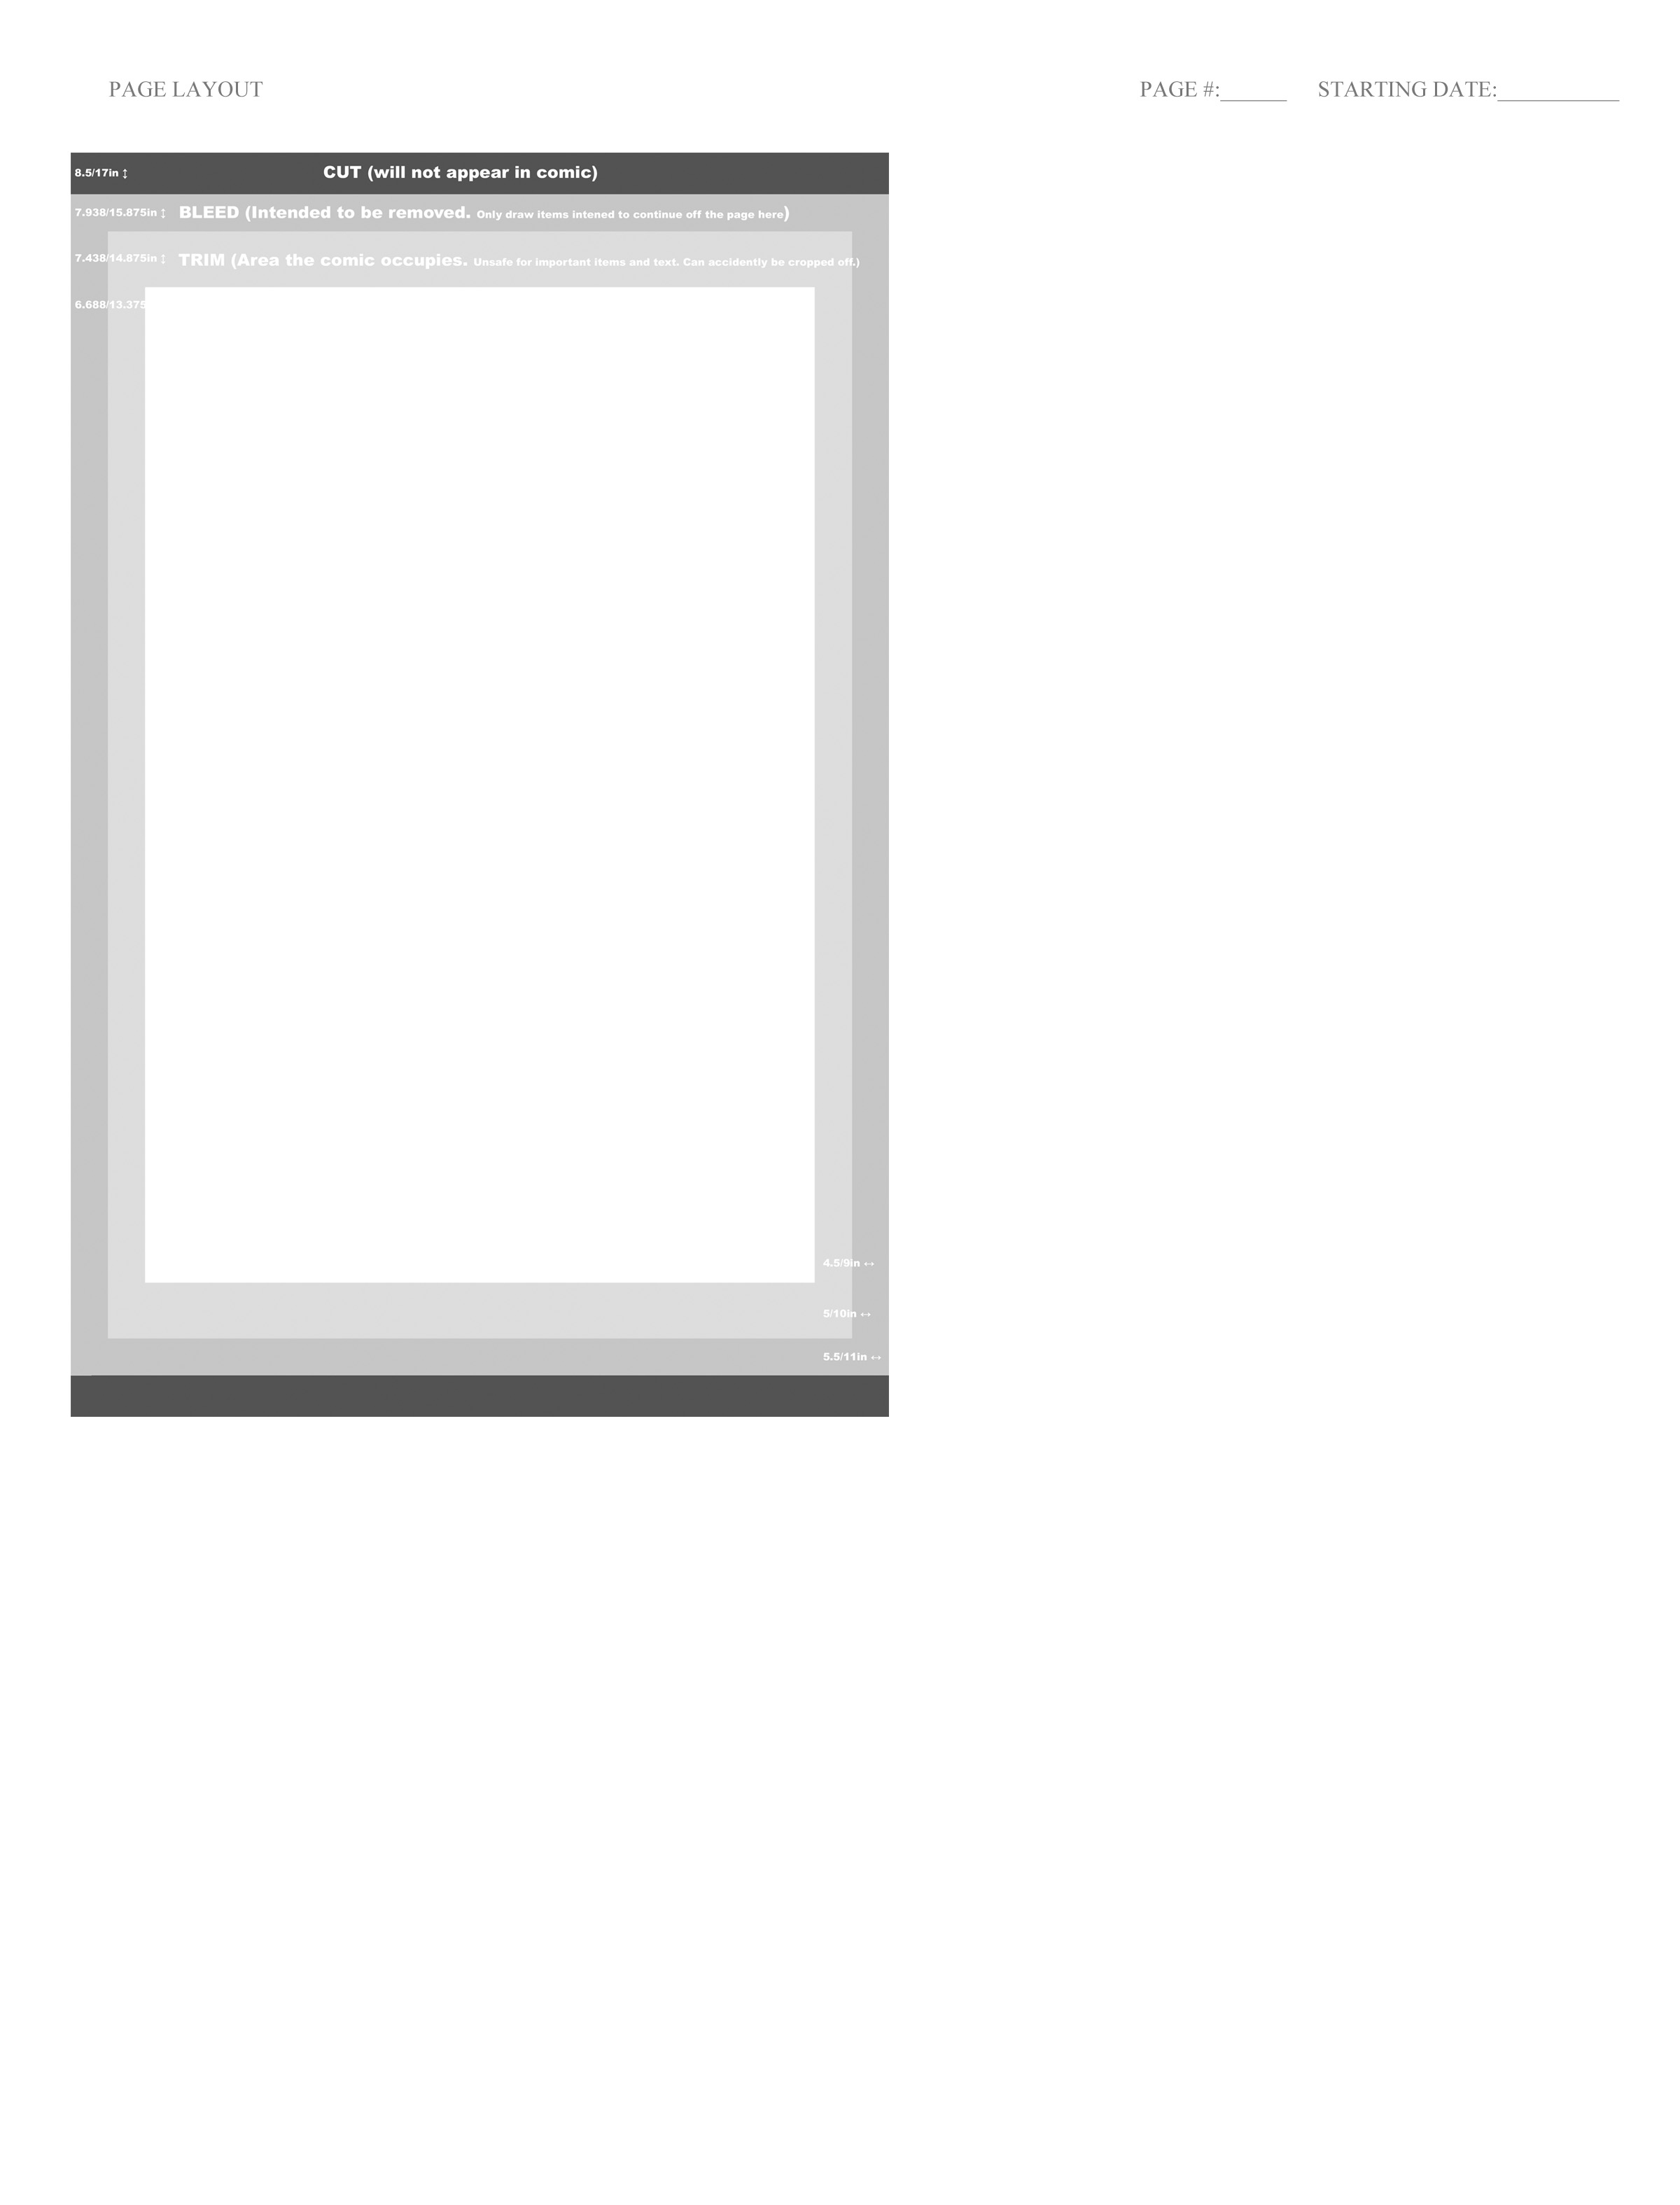 Comic Page Layout Template – Last of the Polar Bears